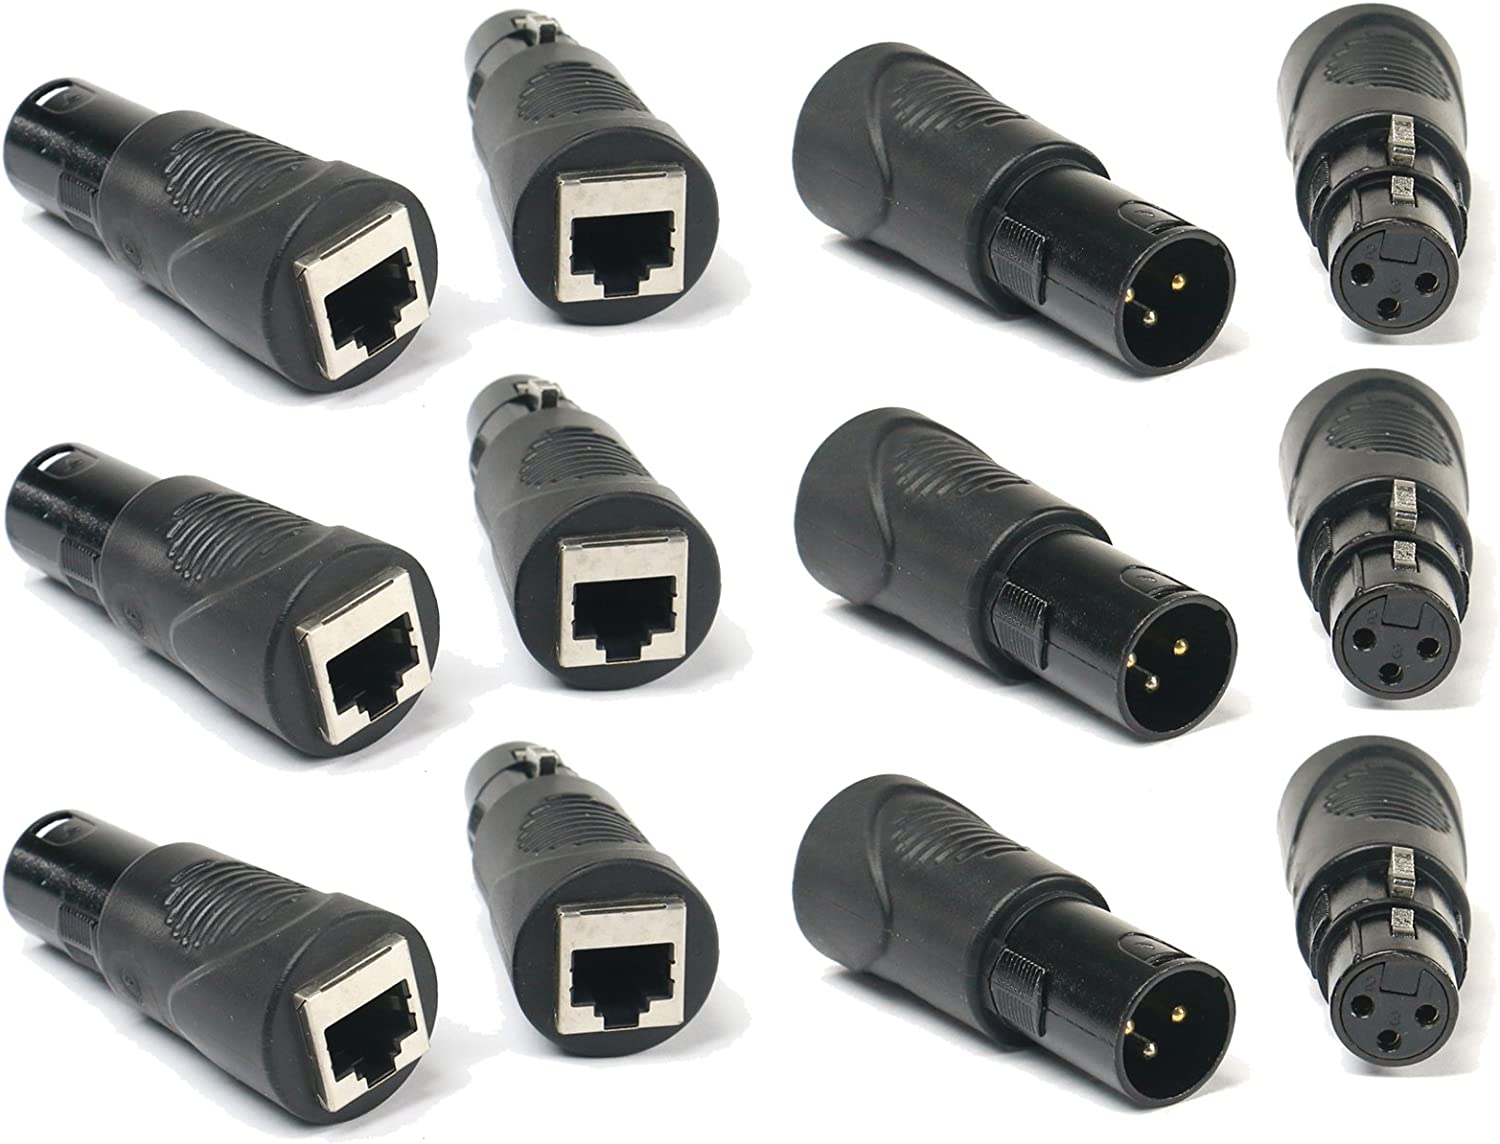 Sweex 3 Pin Male XLR Socket to 5 Pin Female DMX Plug Adapter Cable Lead 0.30 m